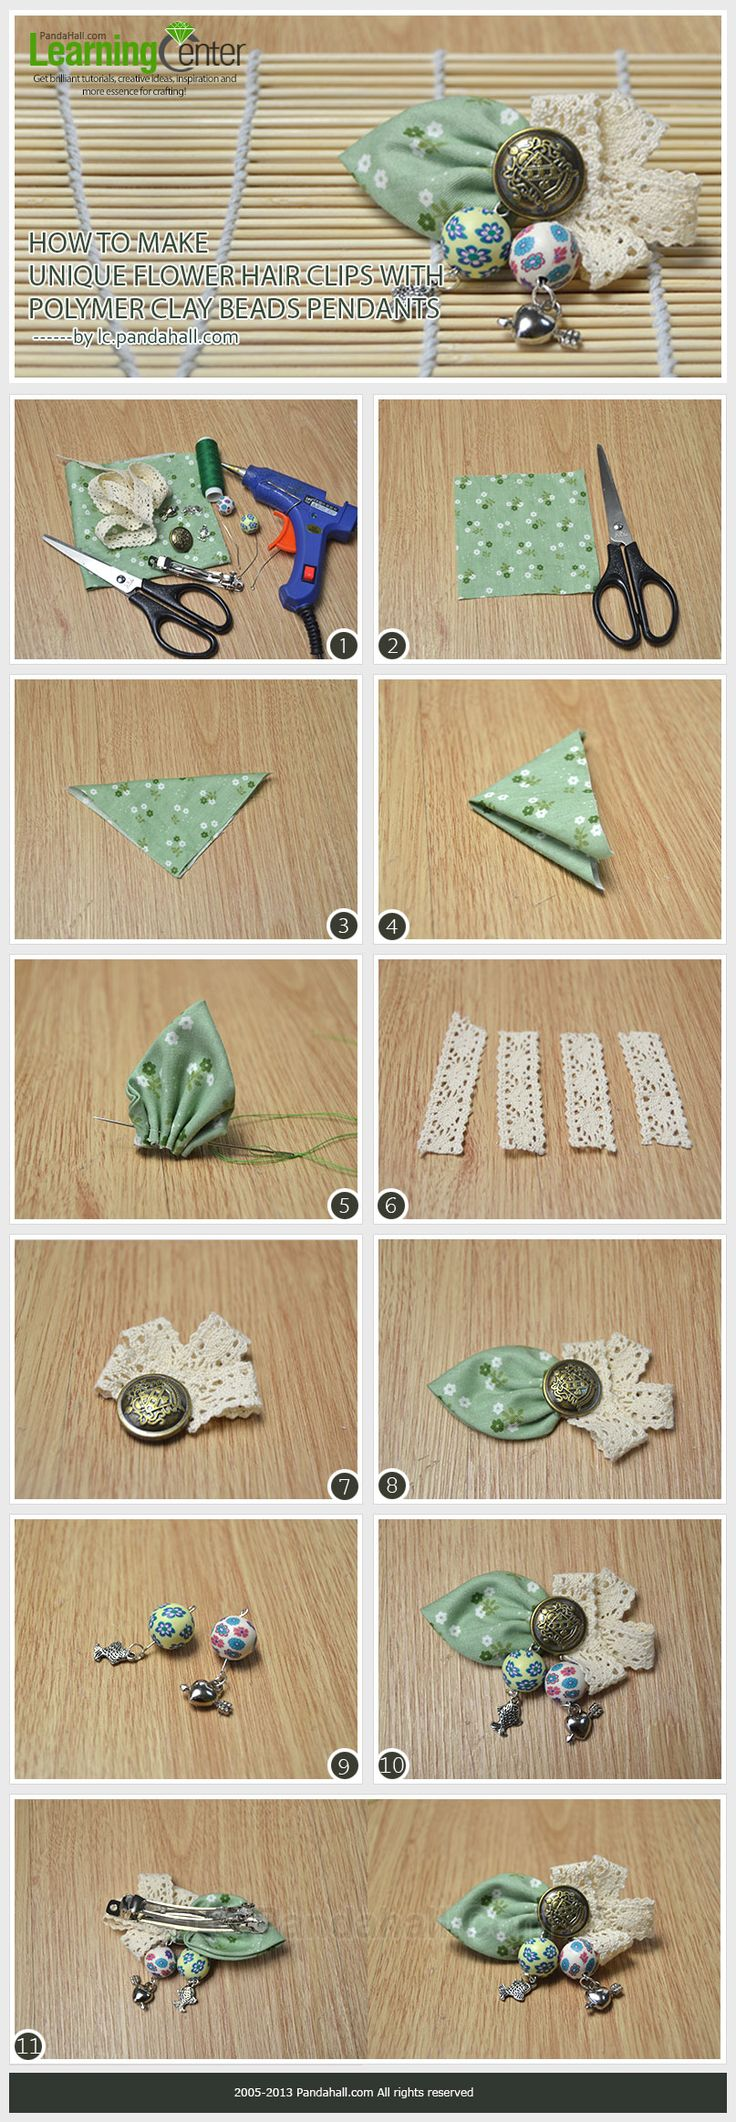 How to Make Unique Flower Hair Clips with Polymer Clay Beads Pendants